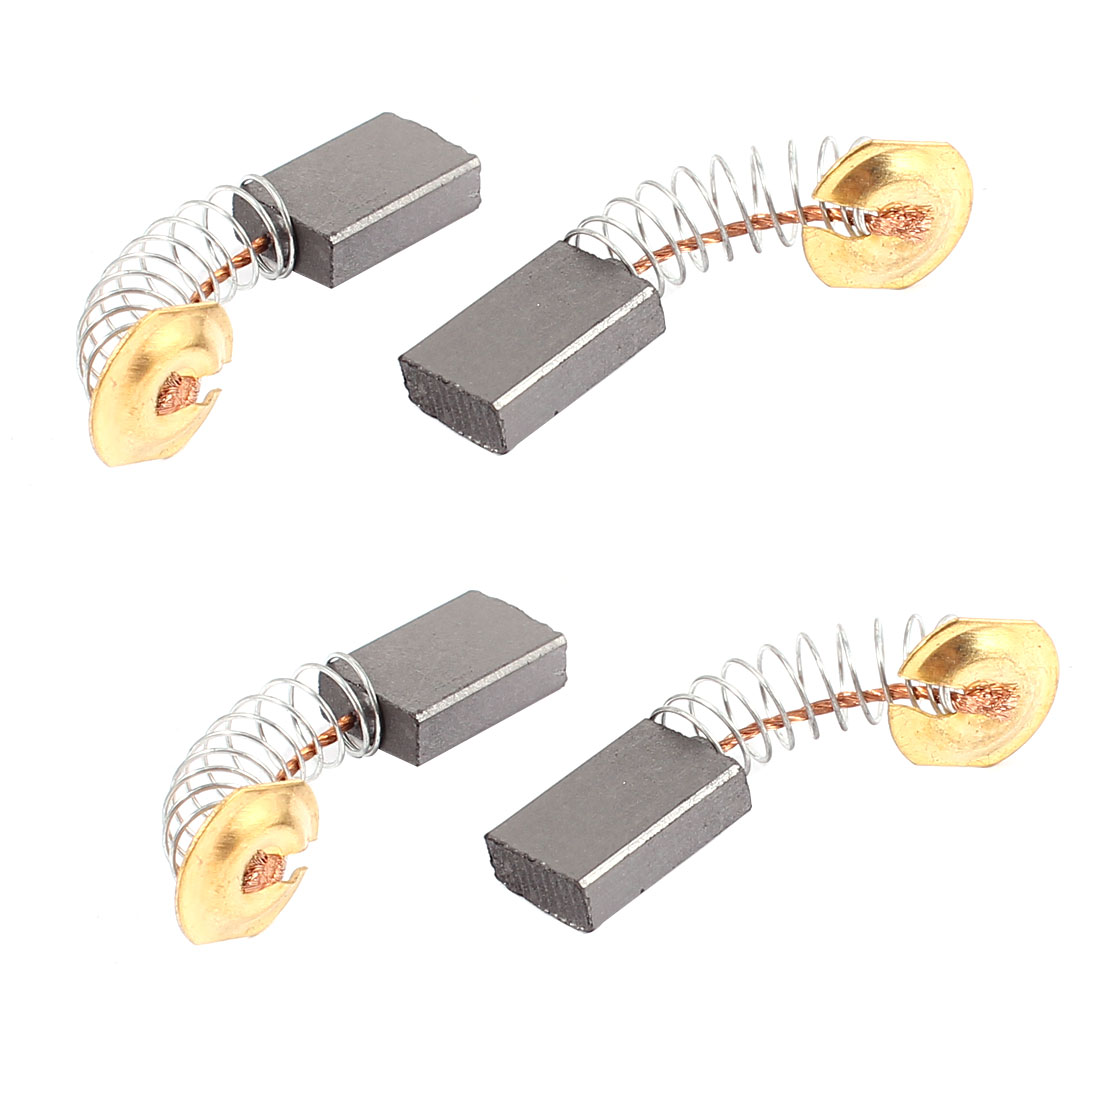 4 Pcs Replacement Electric Motor Carbon Brushes 17mm x 11mm x 5mm for Motors